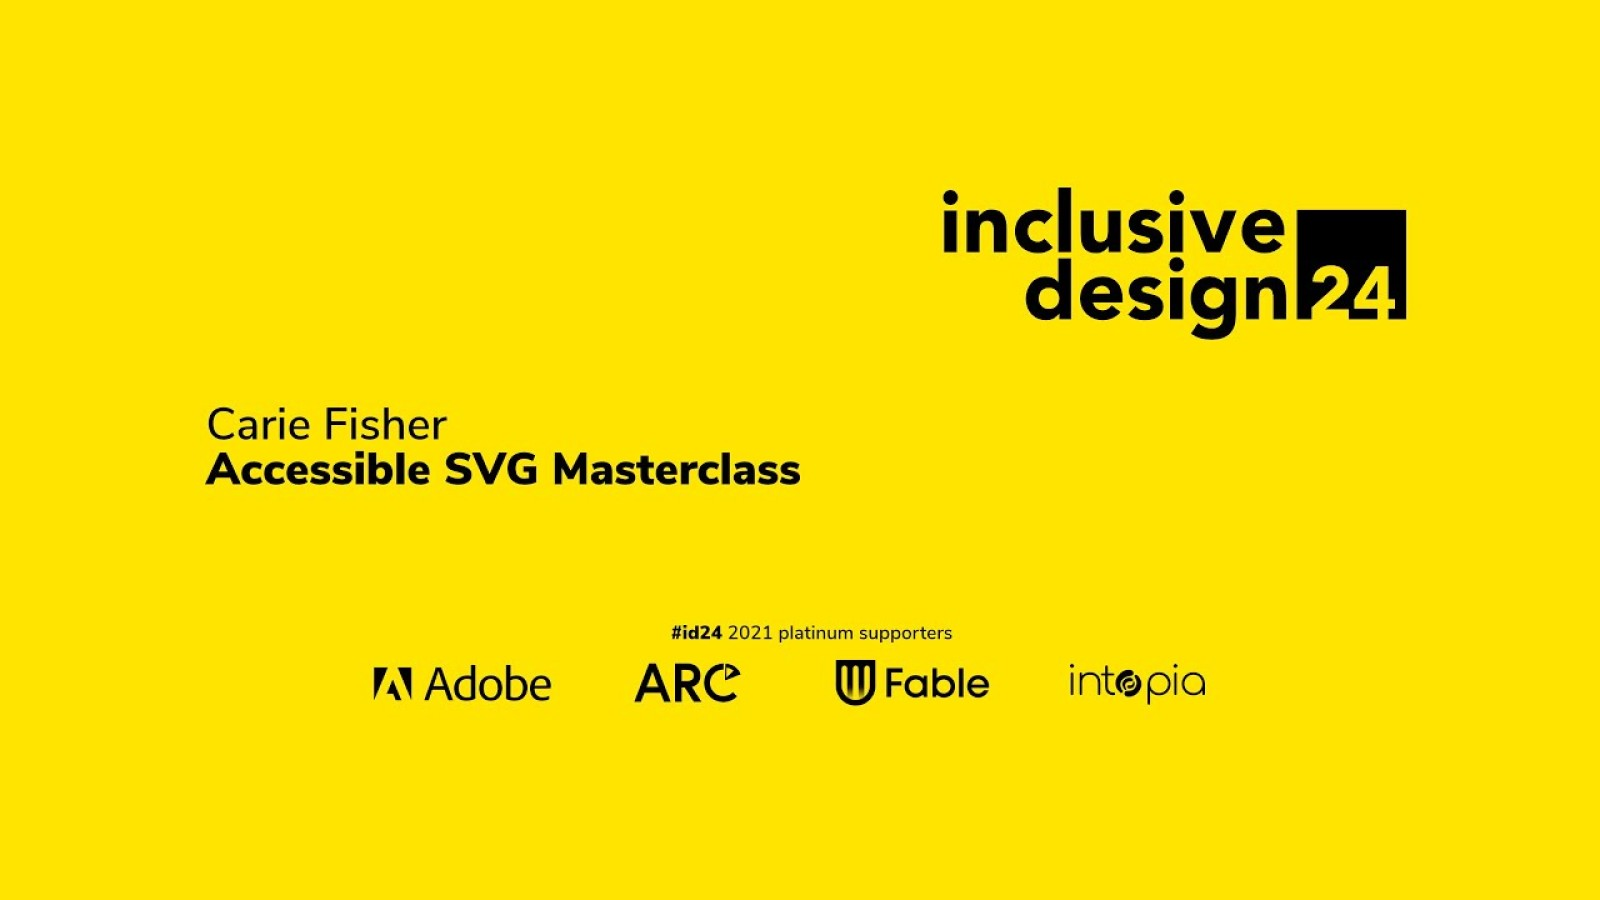 Accessible SVG Masterclass